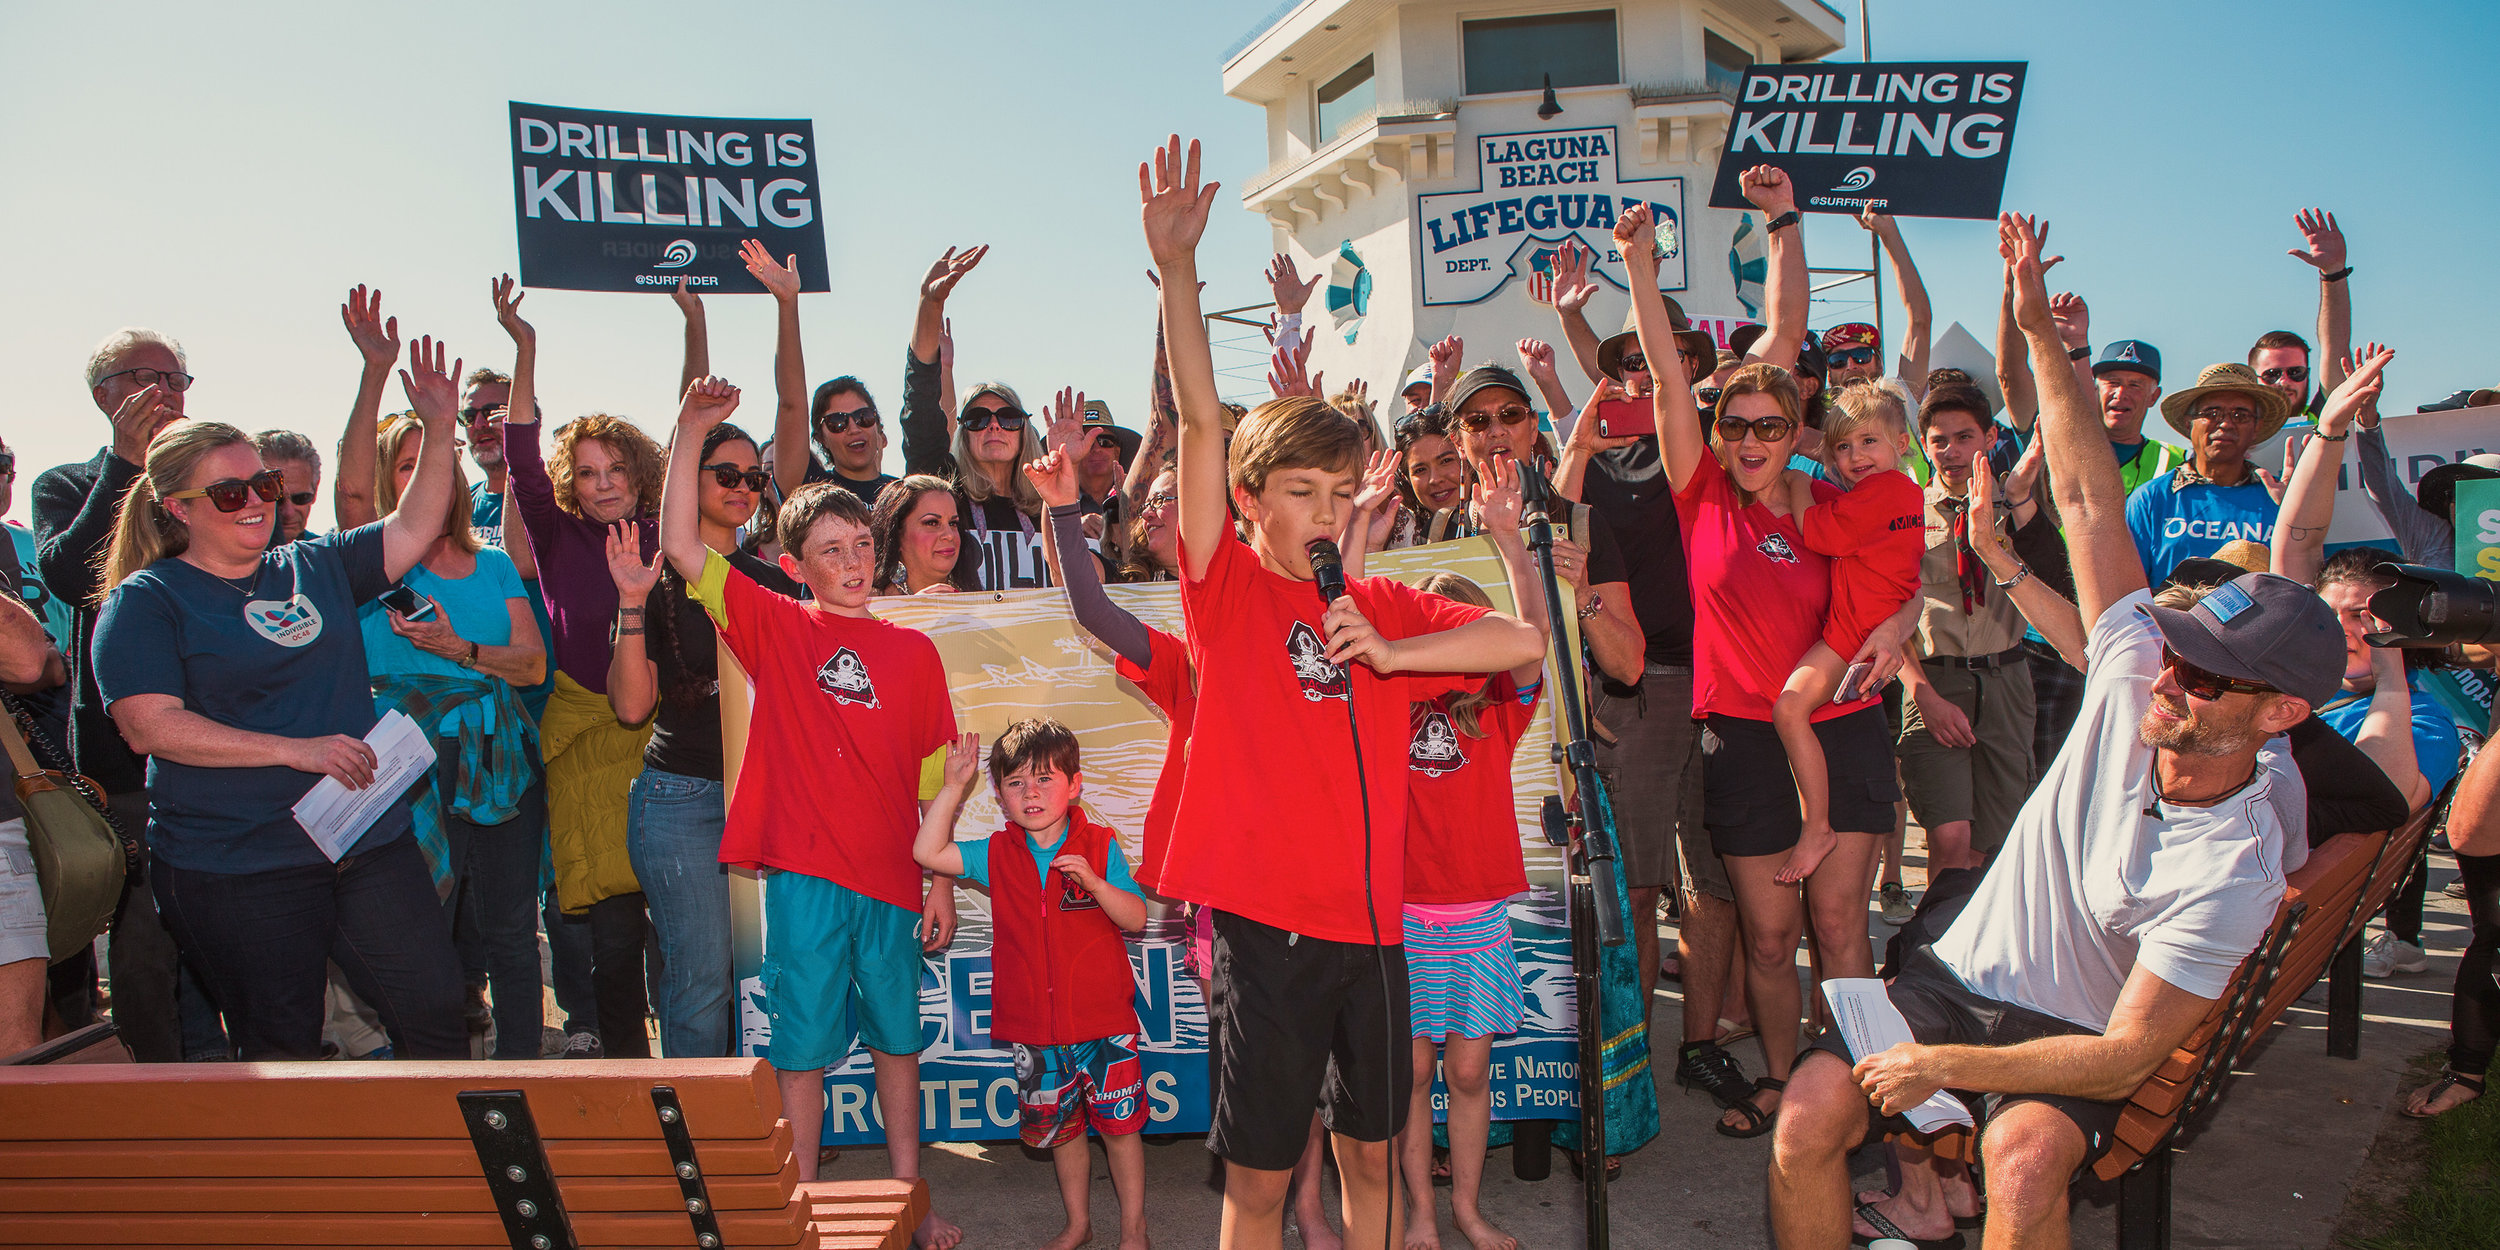 3 offshore drilling protest organizers shown include Ted Danson, Sara Lowell, Rich German.jpg